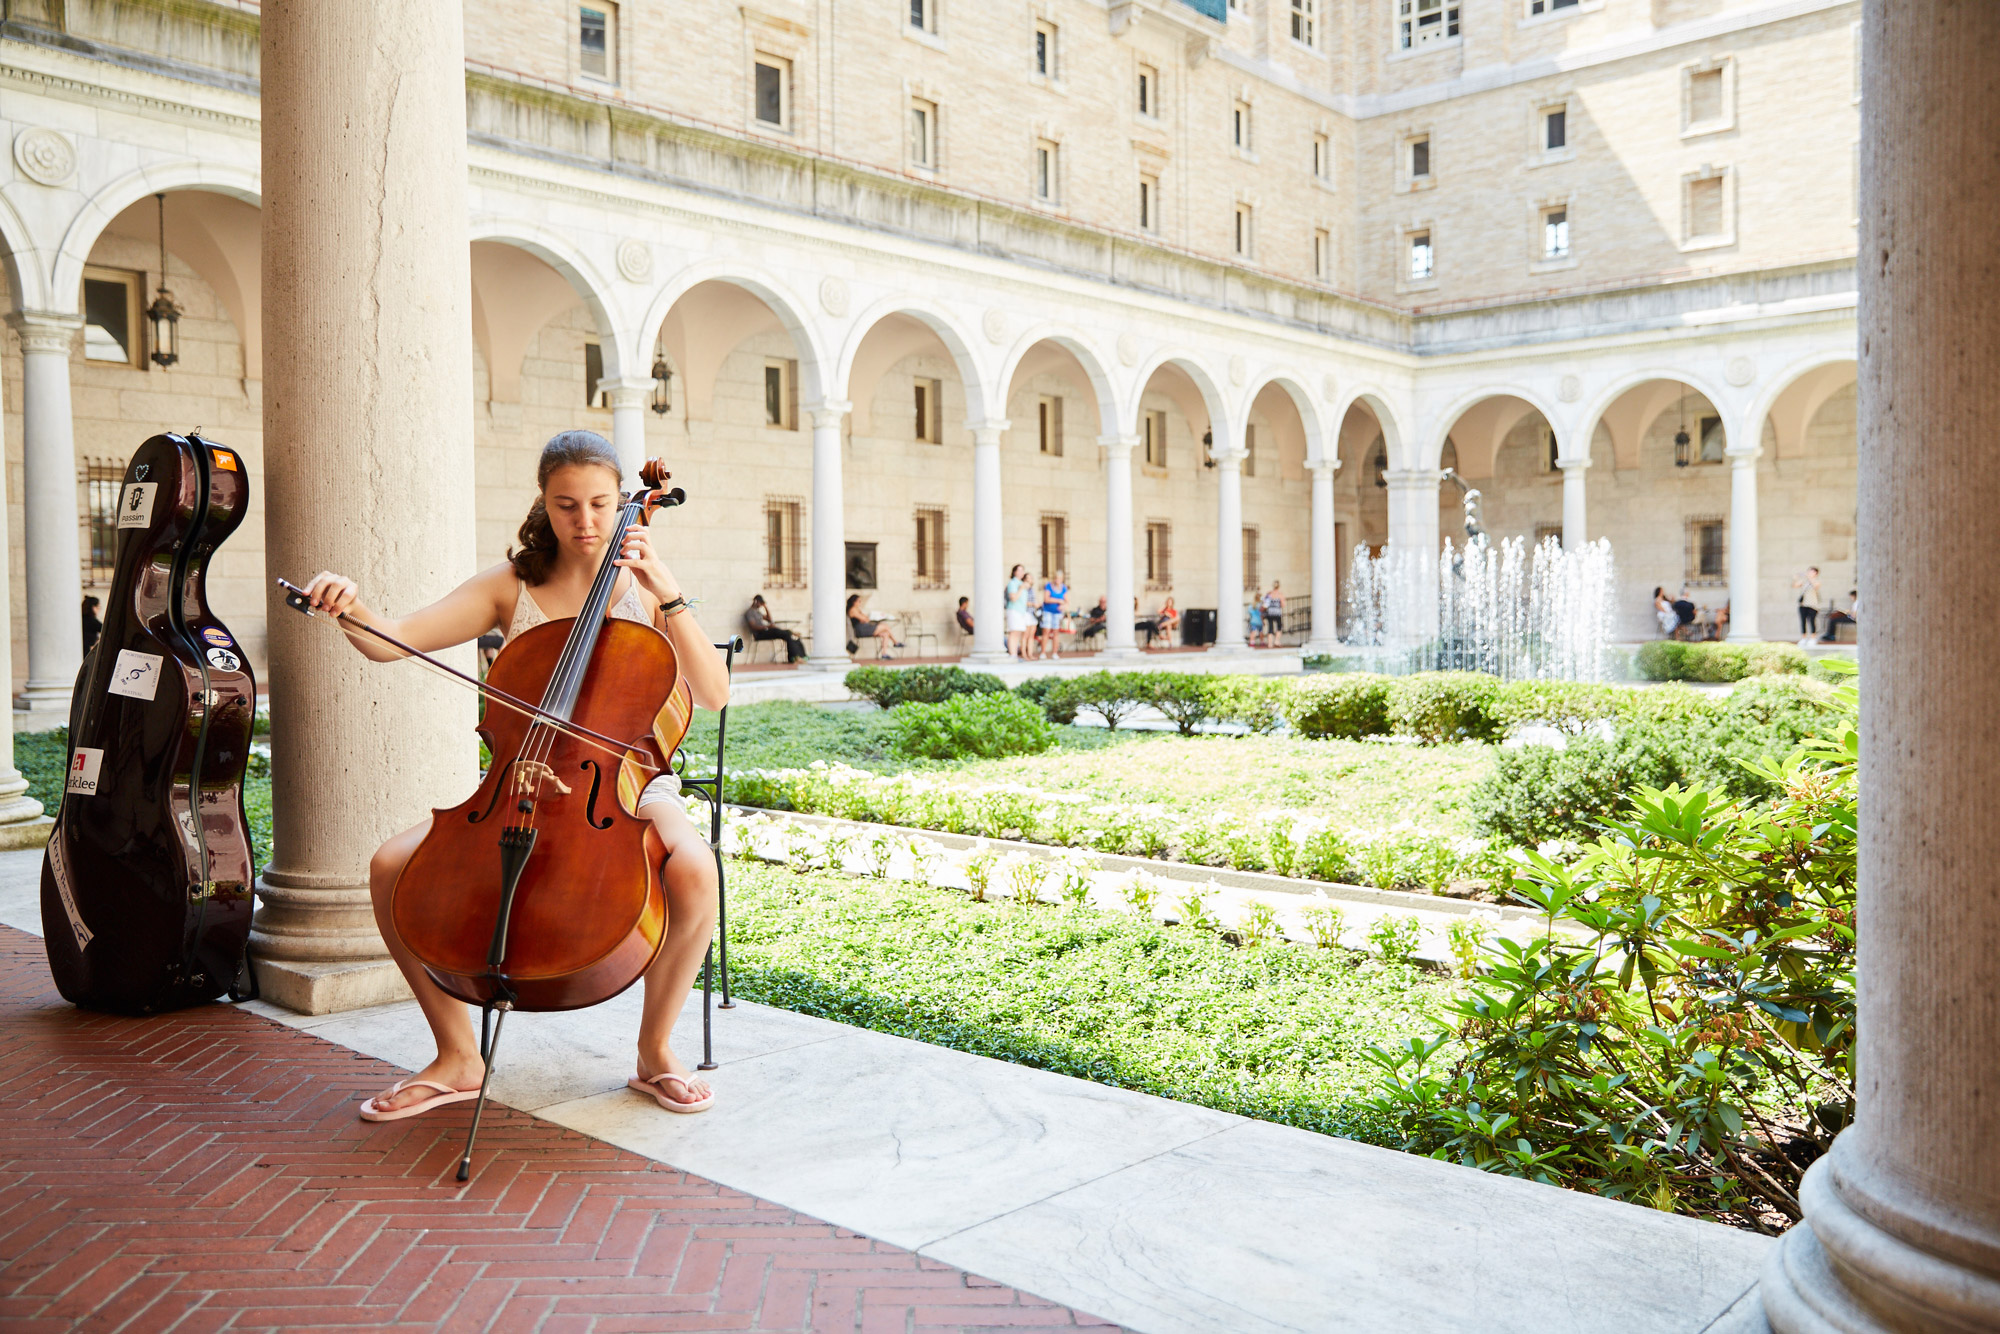 A woman plays the cello in the courtyard at the Boston Public Library during a free concert